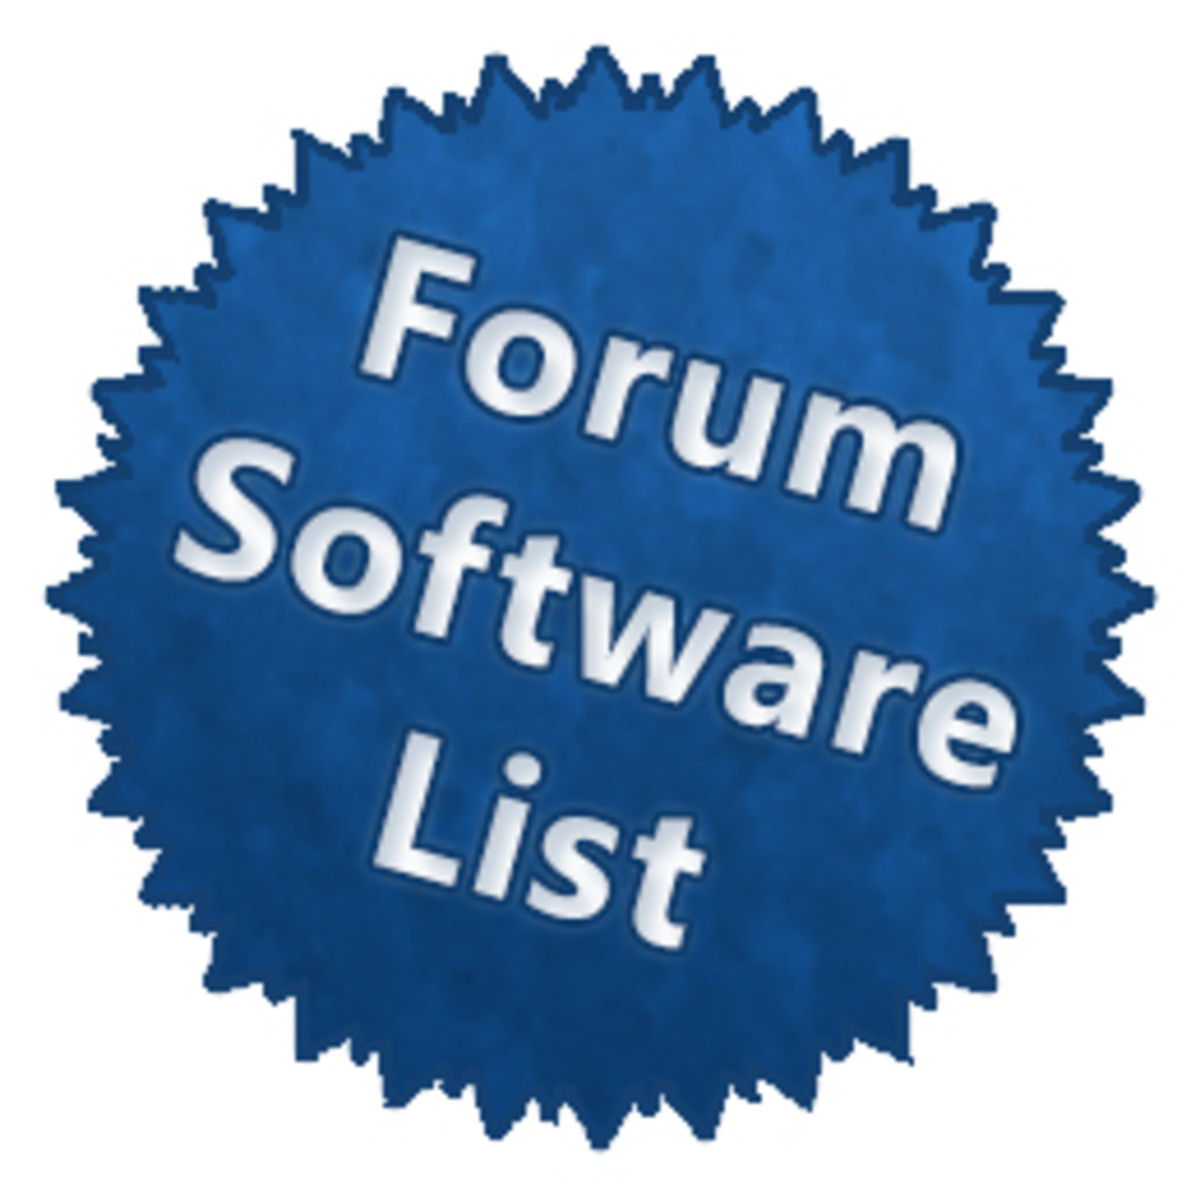 Best Forum Platforms | TurboFuture